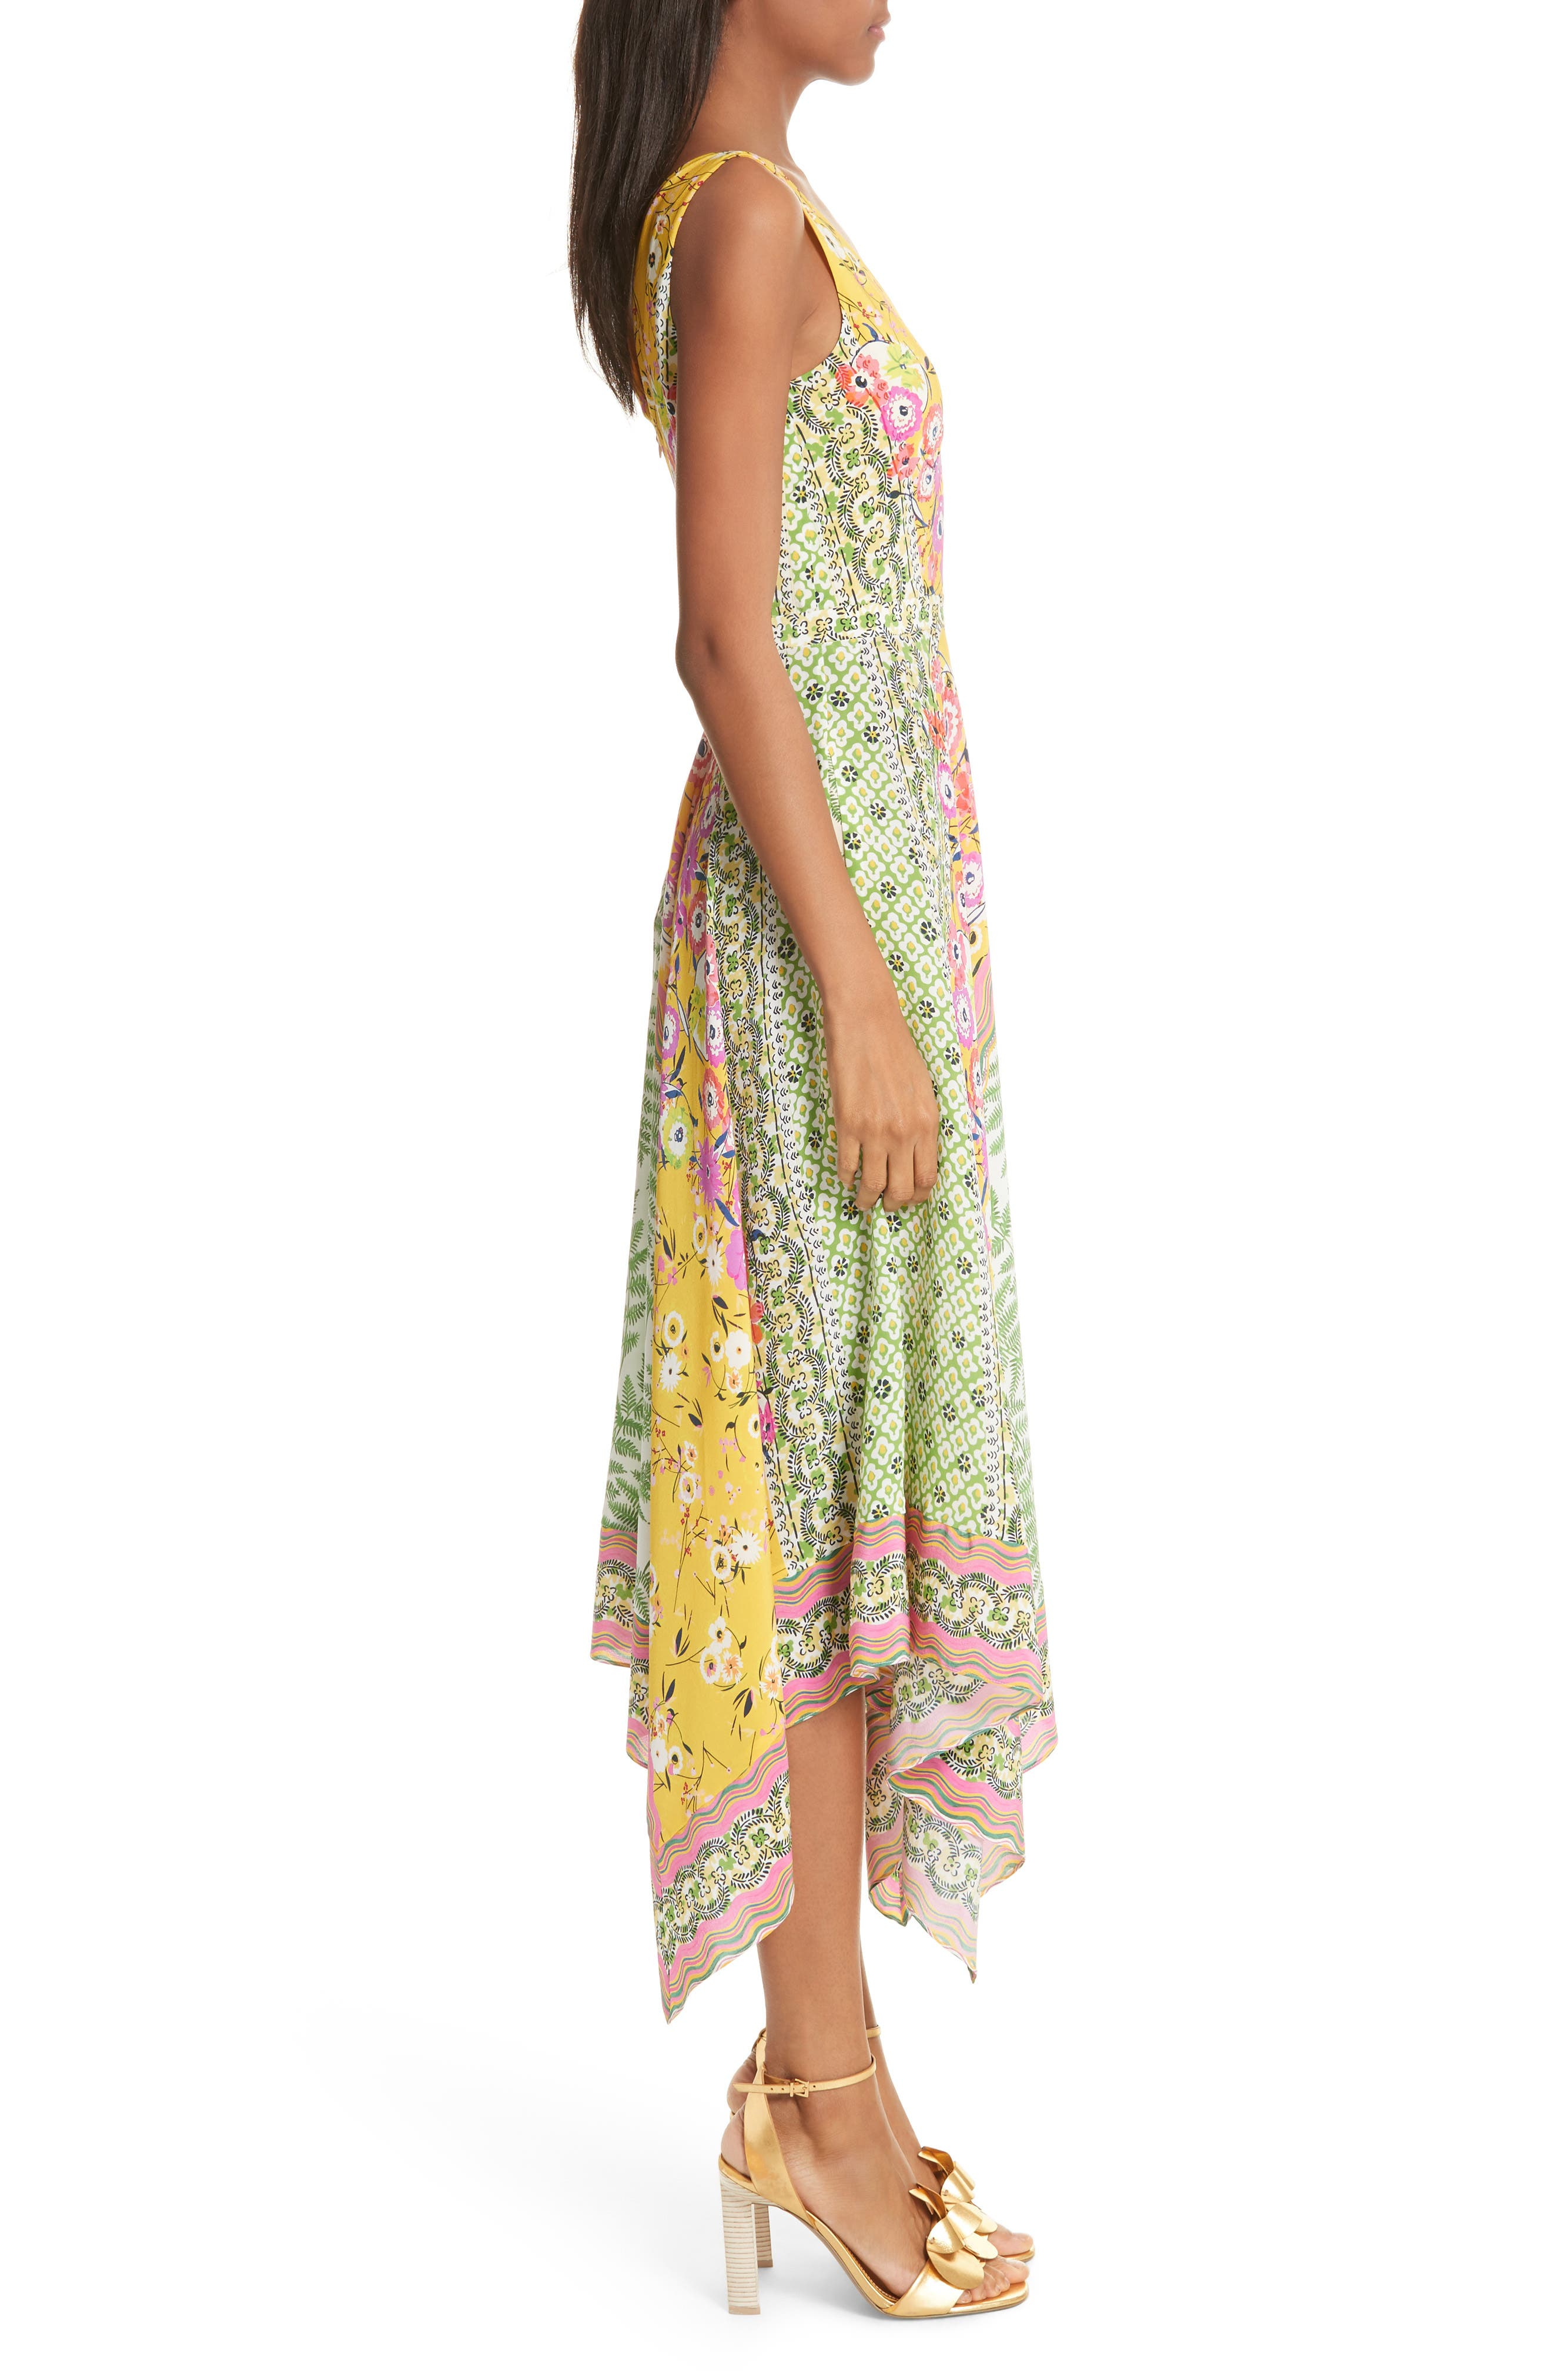 Zuri Floral Print Dress,                             Alternate thumbnail 3, color,                             Flowers/ Ferns